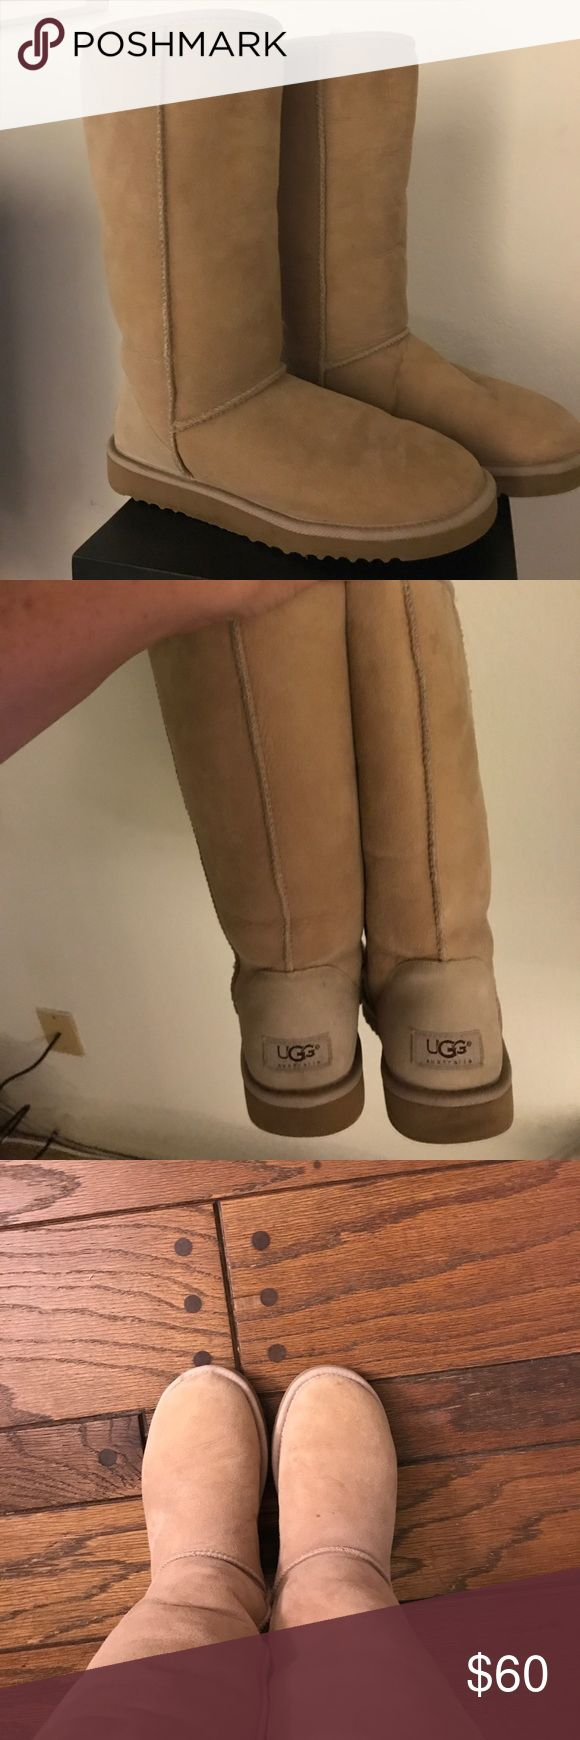 Genuine Classic UGG boots in Chestnut Like New! These are original Uggs. Genuine Classic Ugg Boots in Chestnut color, size 7 women's.  Cozy Sterling Lining and Sheepskin upper. UGG Shoes Winter & Rain Boots